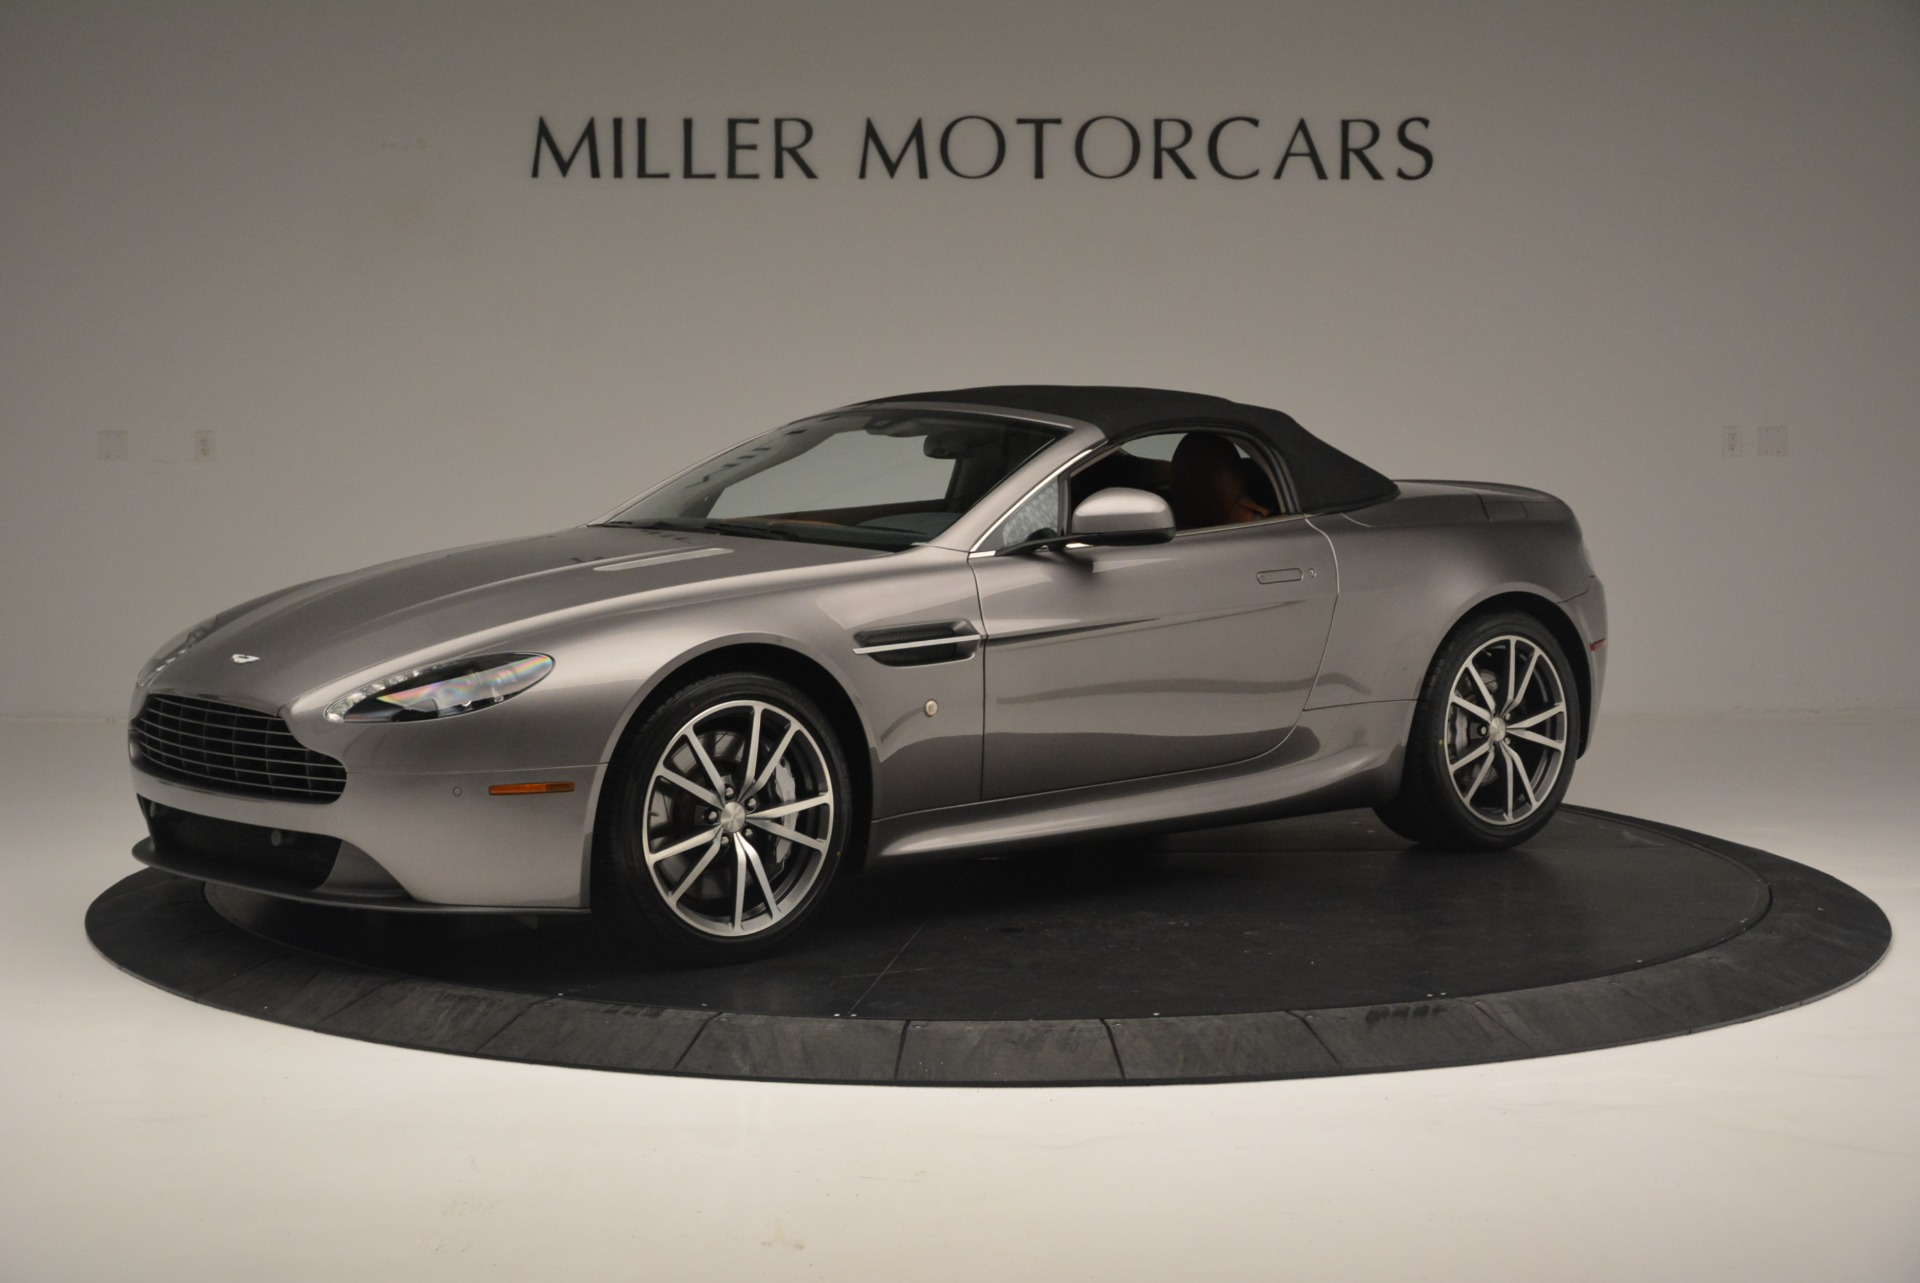 Used 2015 Aston Martin V8 Vantage Roadster For Sale In Greenwich, CT 2463_p14